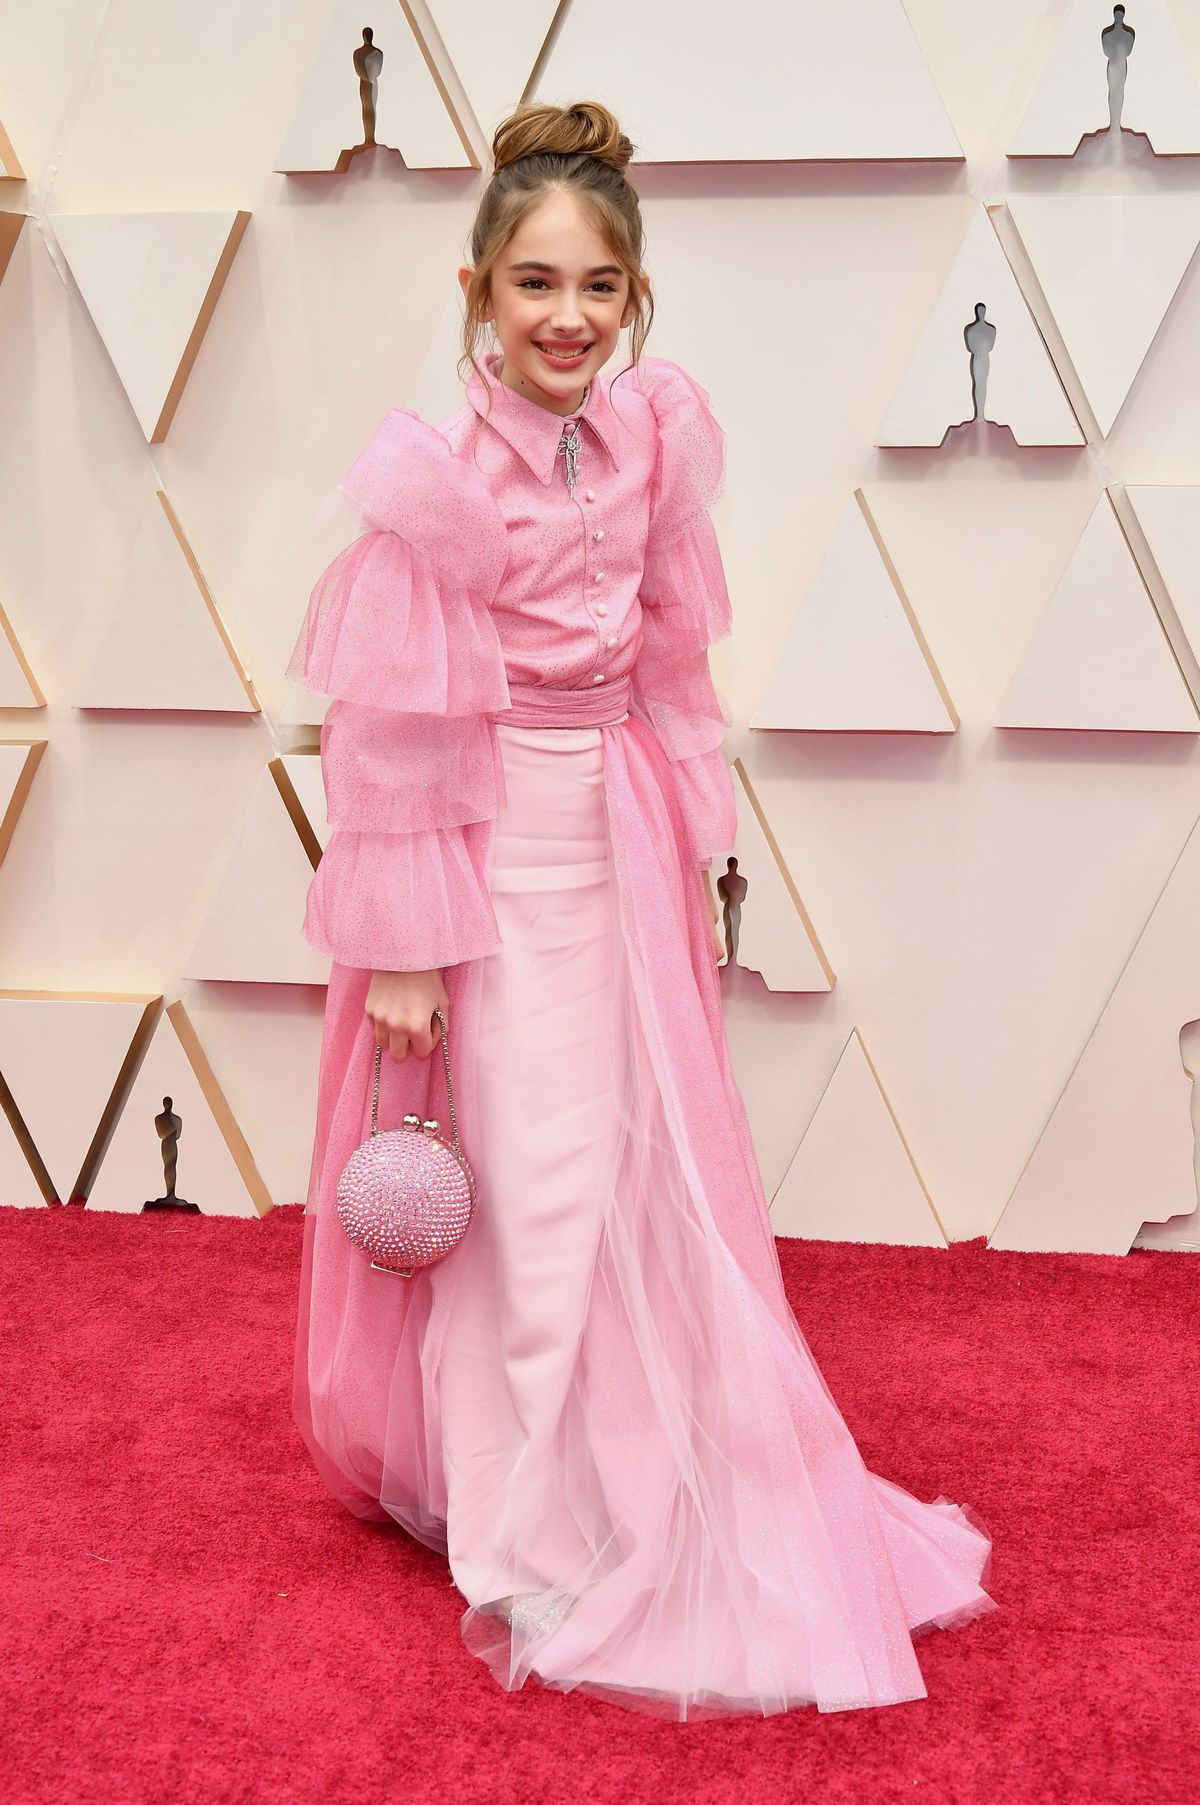 Julia Butters wears a pink dress by Christian Siriano on the red carpet.